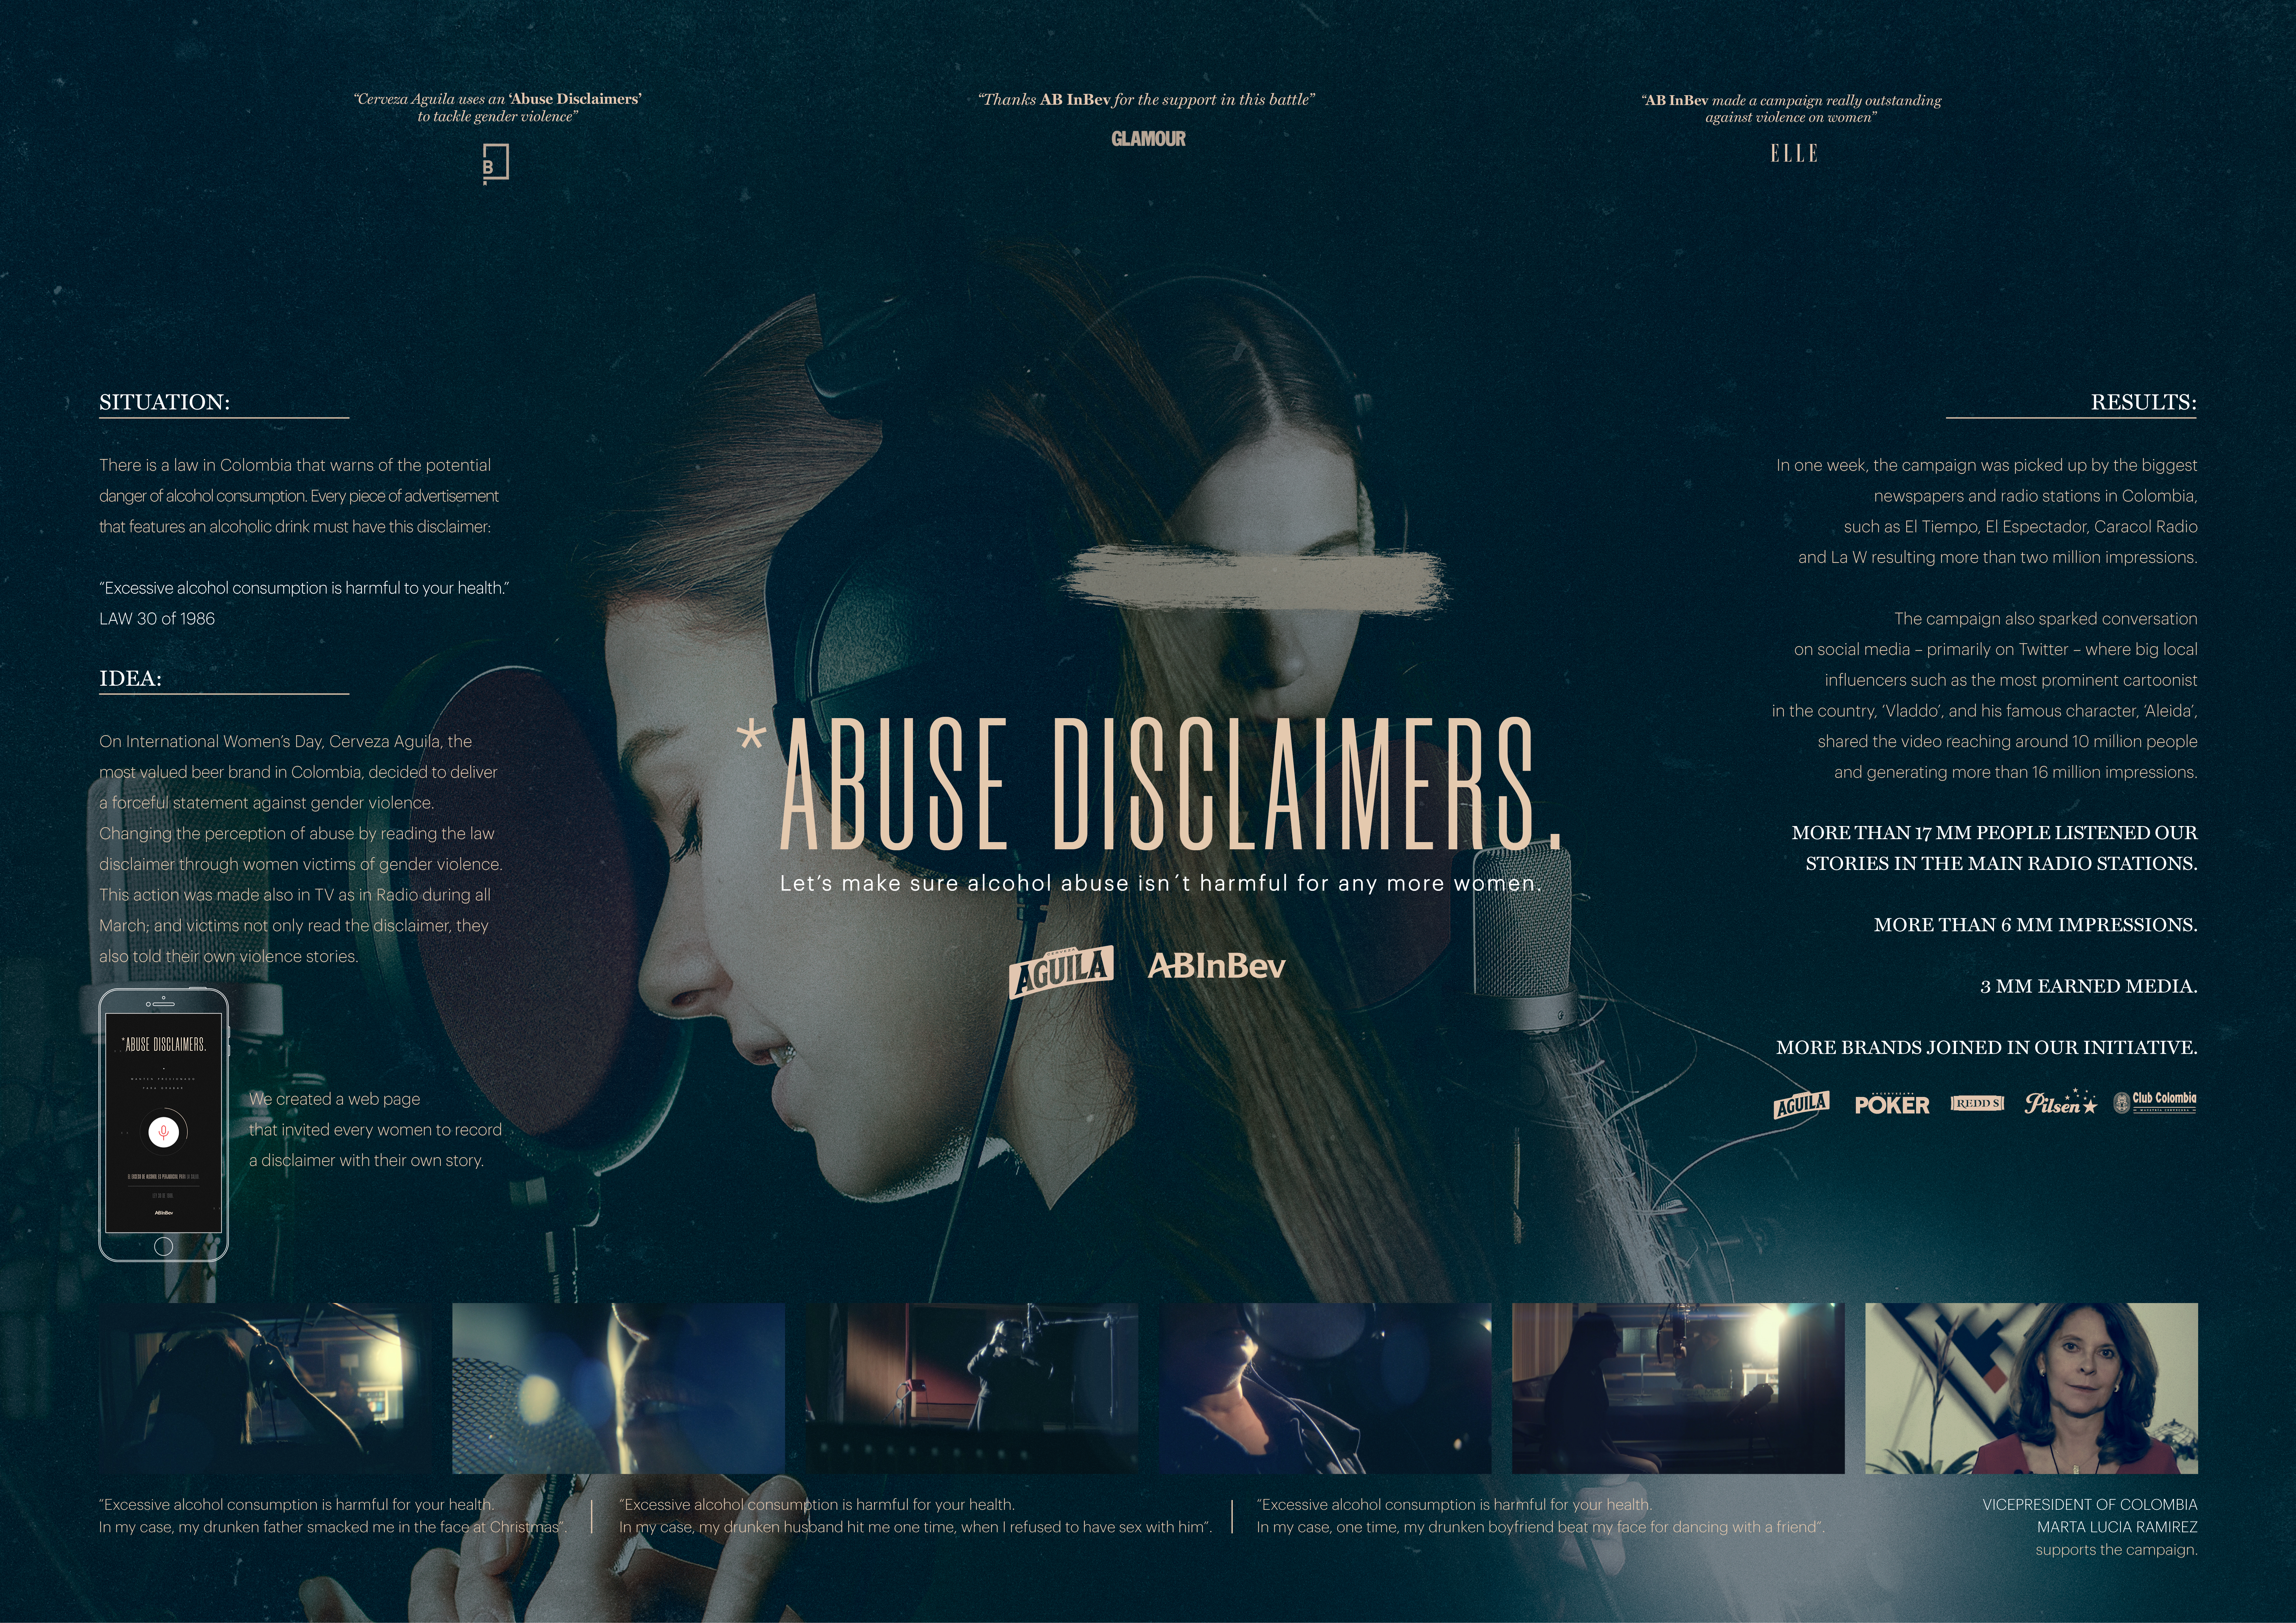 Abuse Disclaimers-support